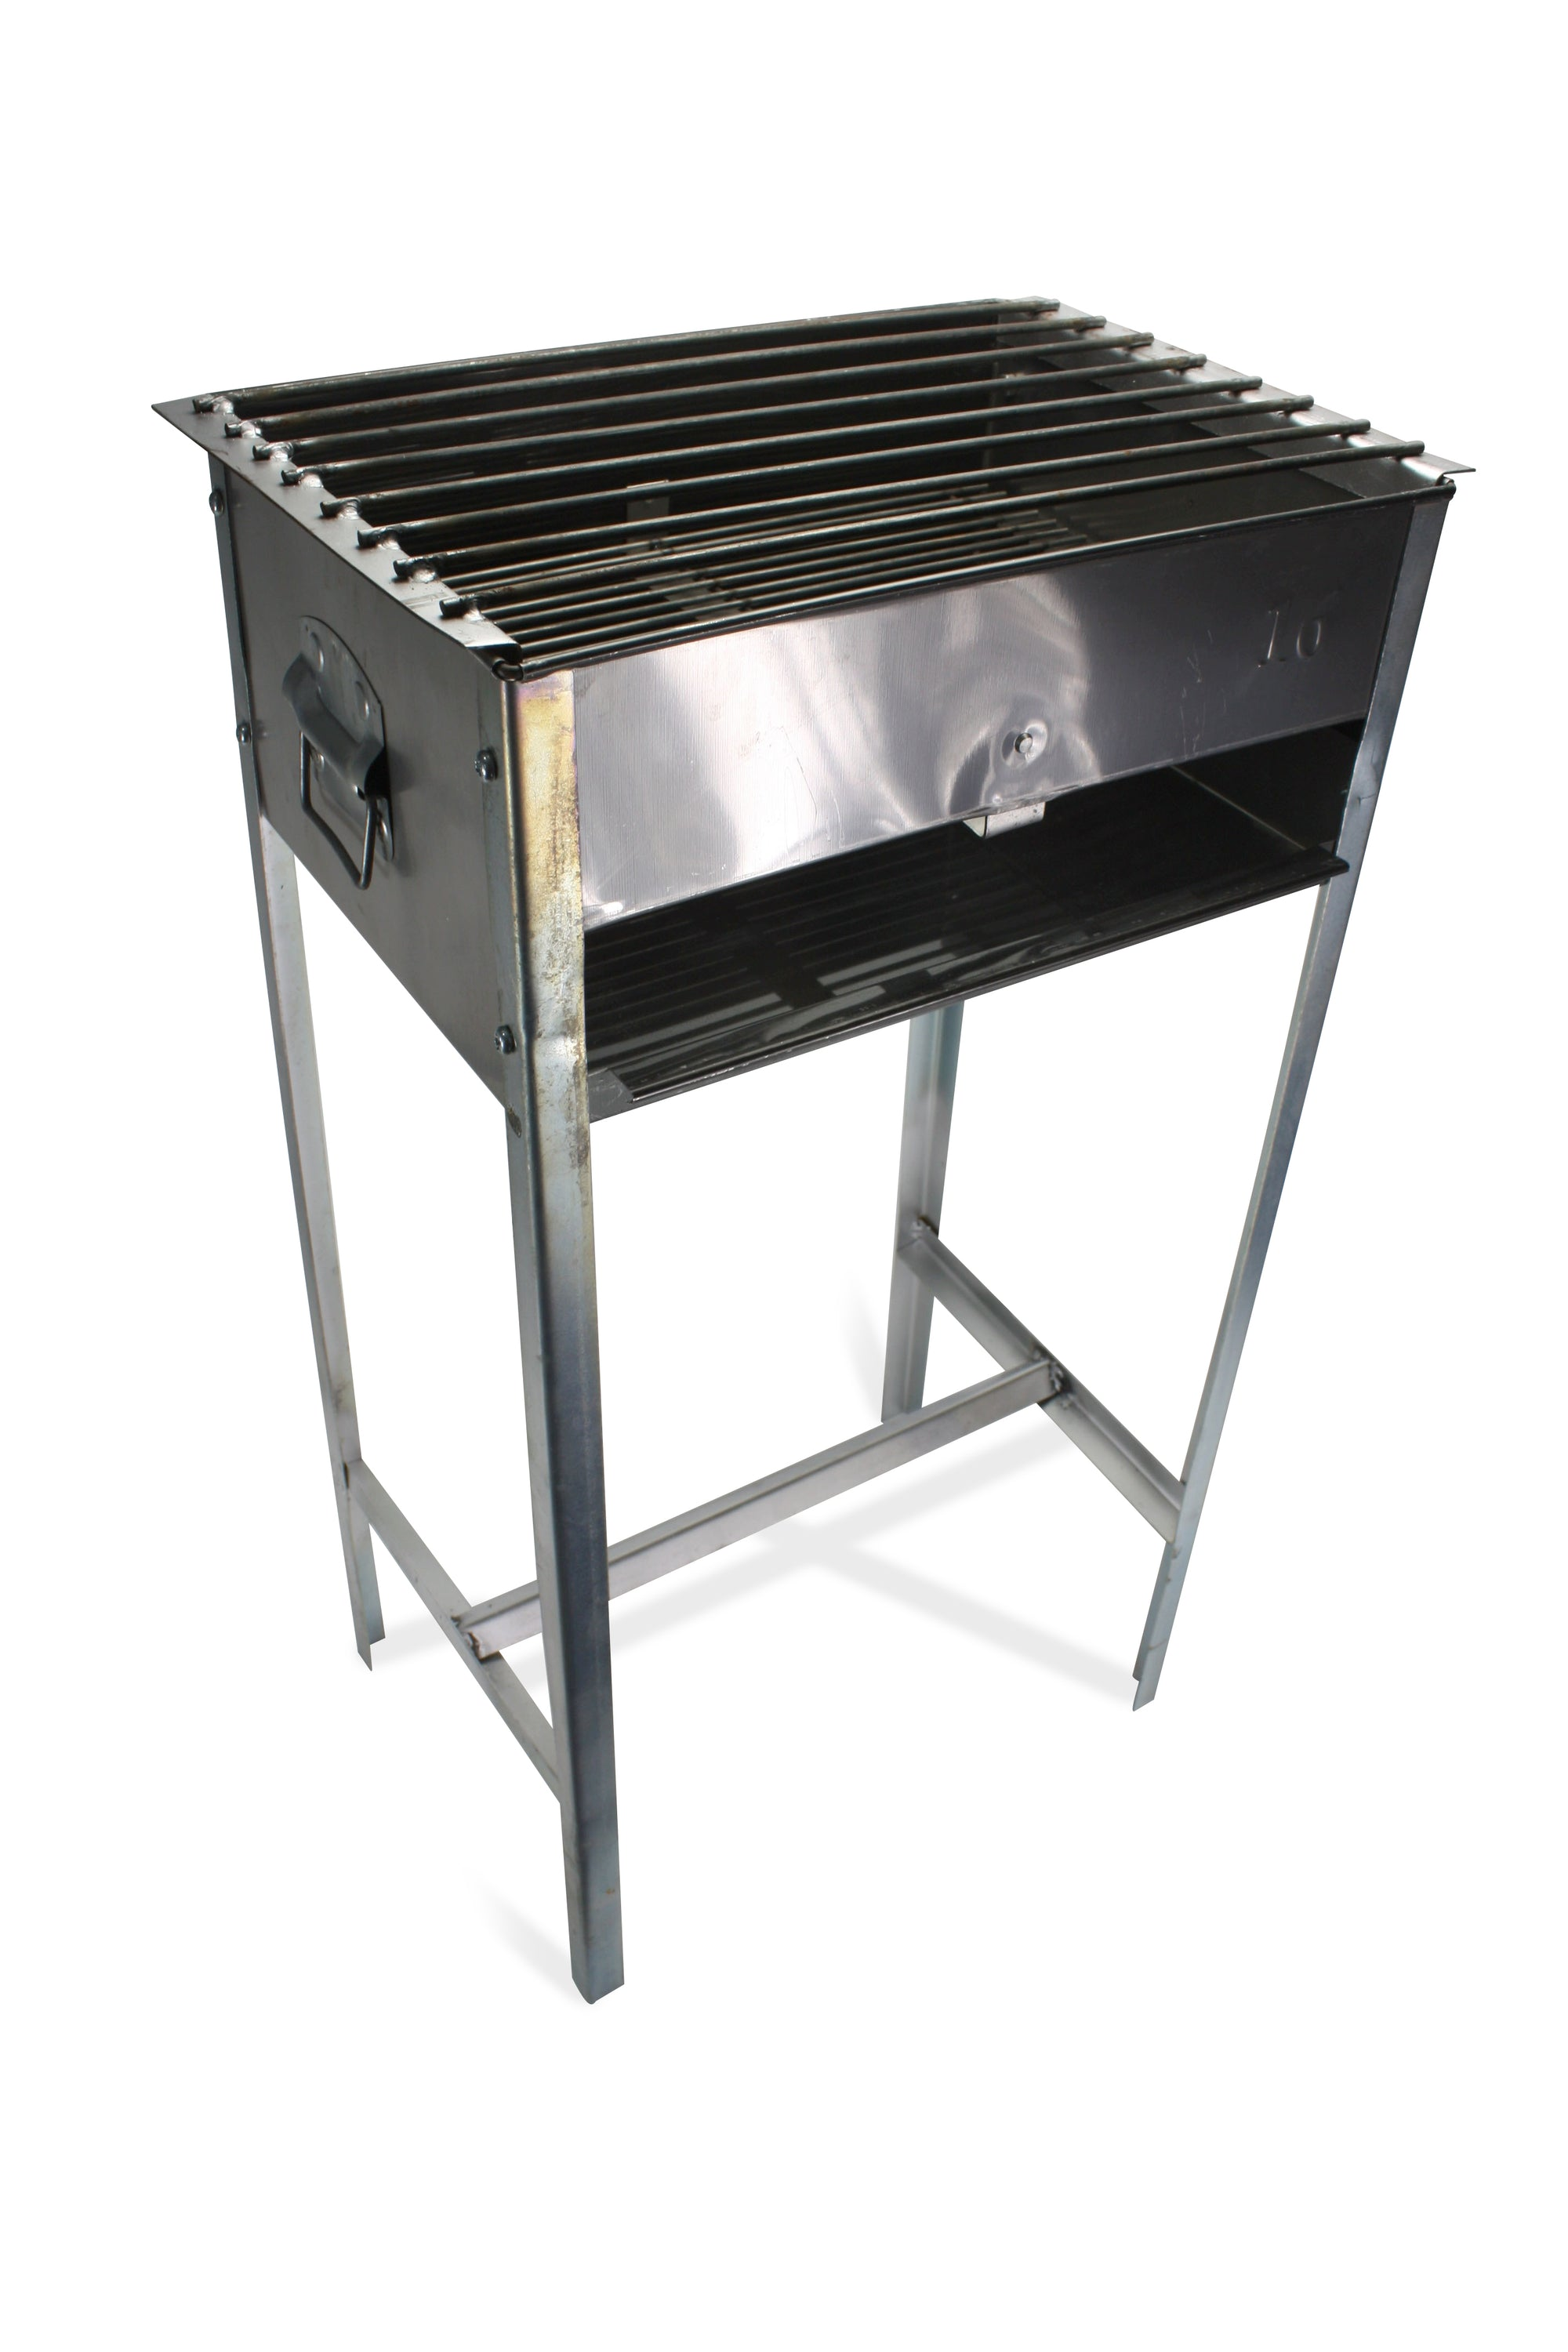 Traditional Upright Metal Thai Barbecue Grill with bar supports - 16 x 12 inch size - farangshop-co